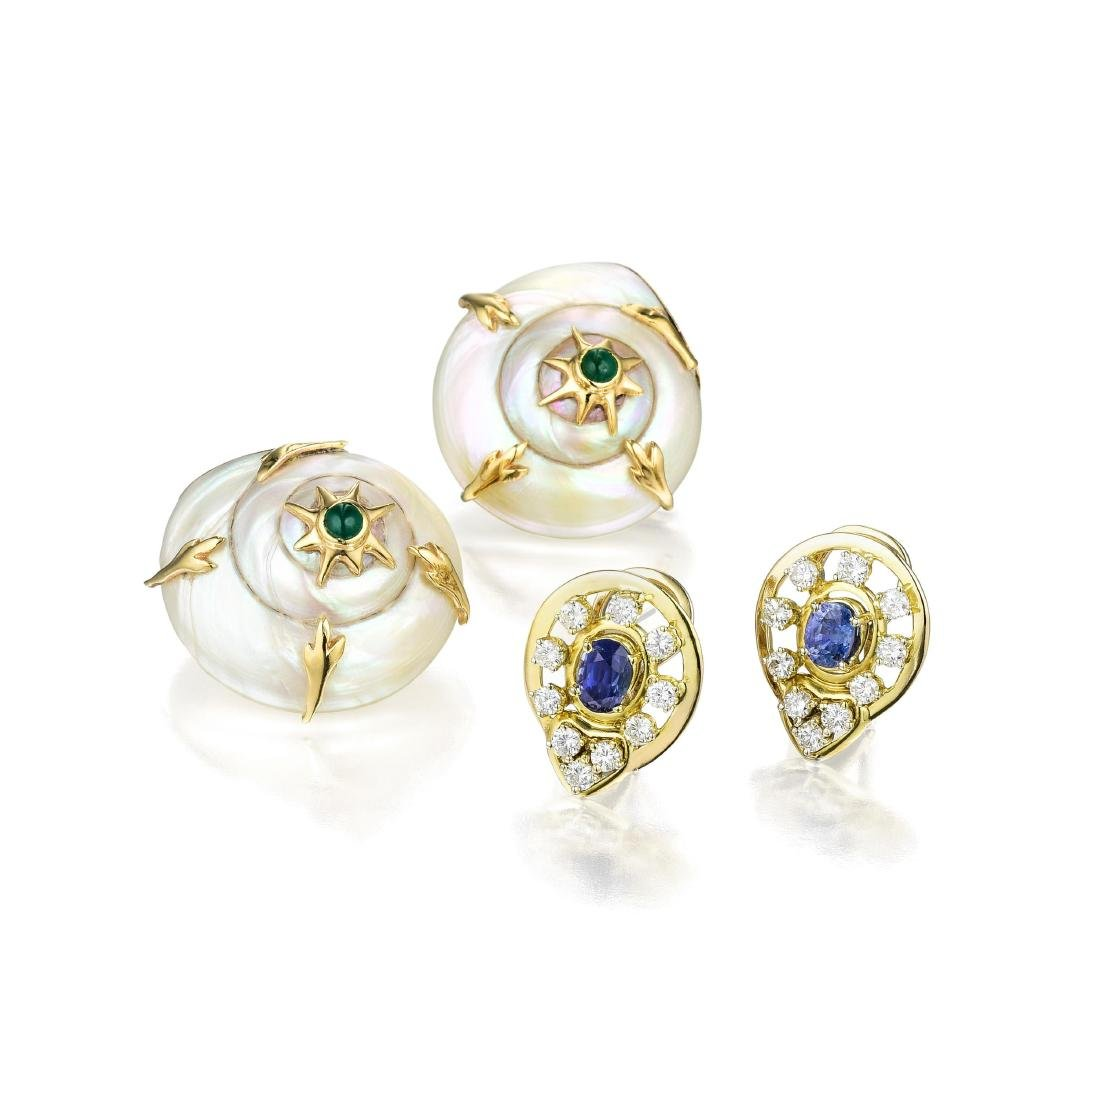 Two Pairs of 14K Gold Diamond and Gemstone Earrings